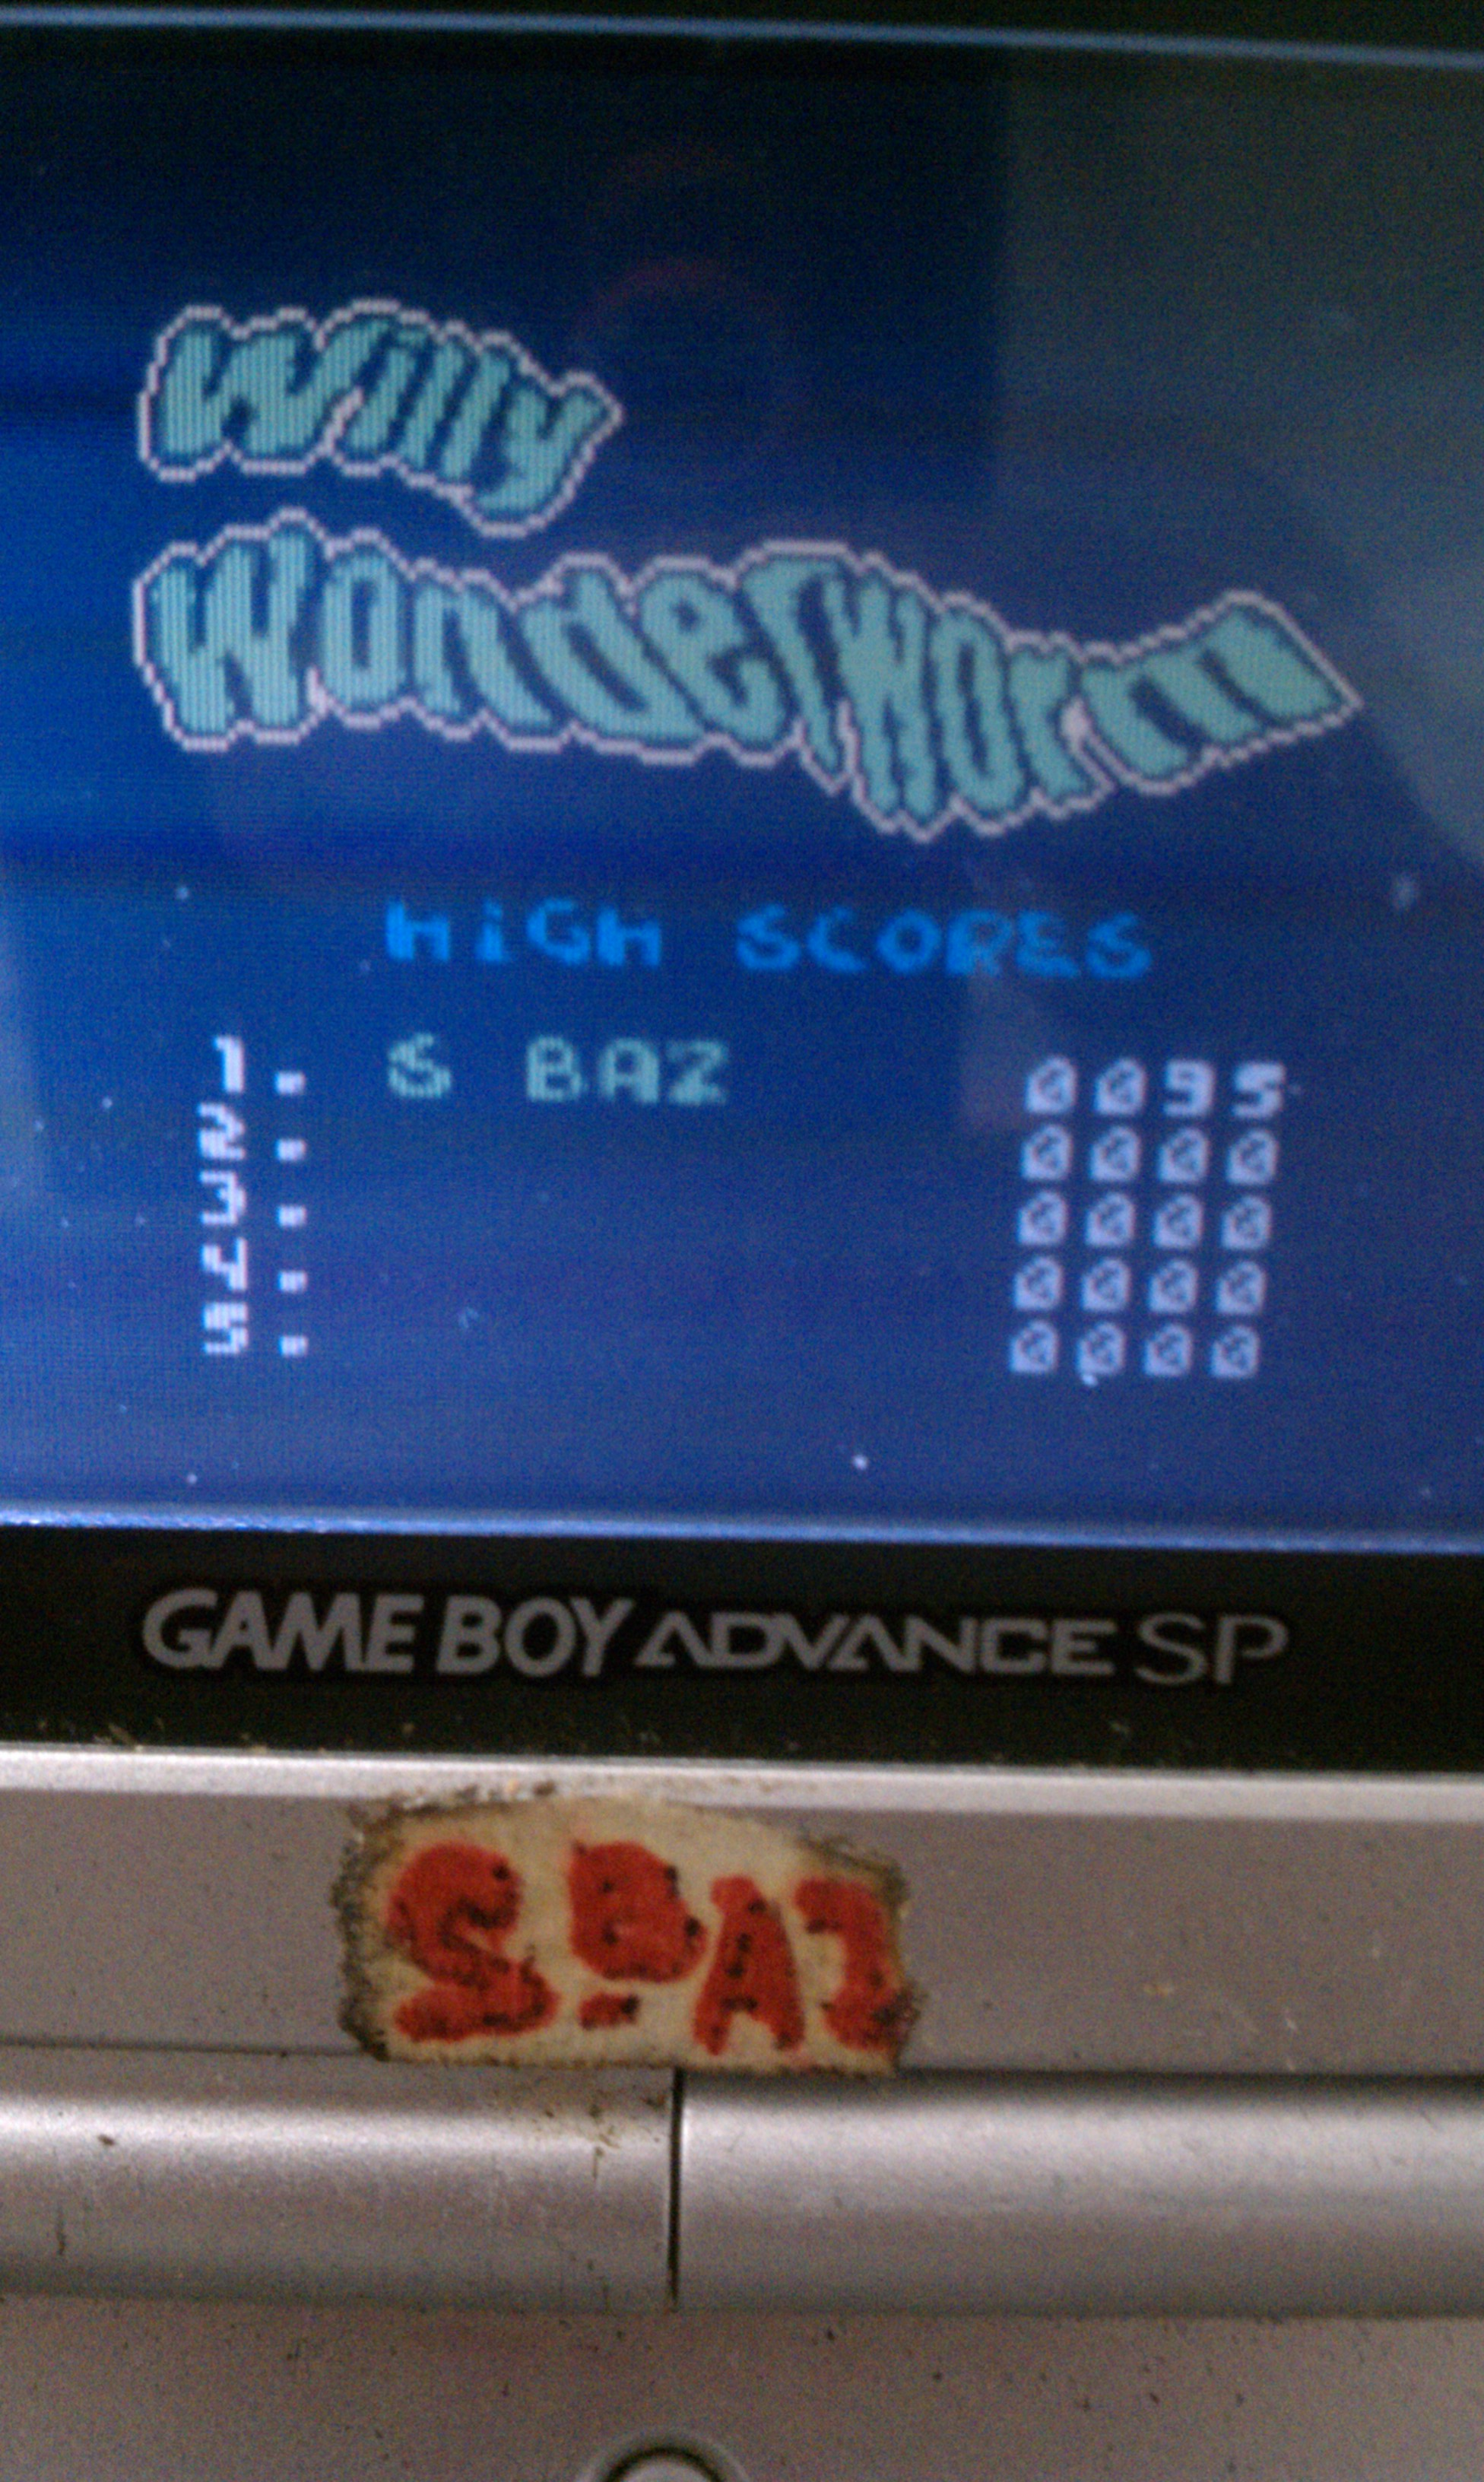 S.BAZ: Willy Wonderworm (Game Boy Color) 95 points on 2019-11-21 04:27:28